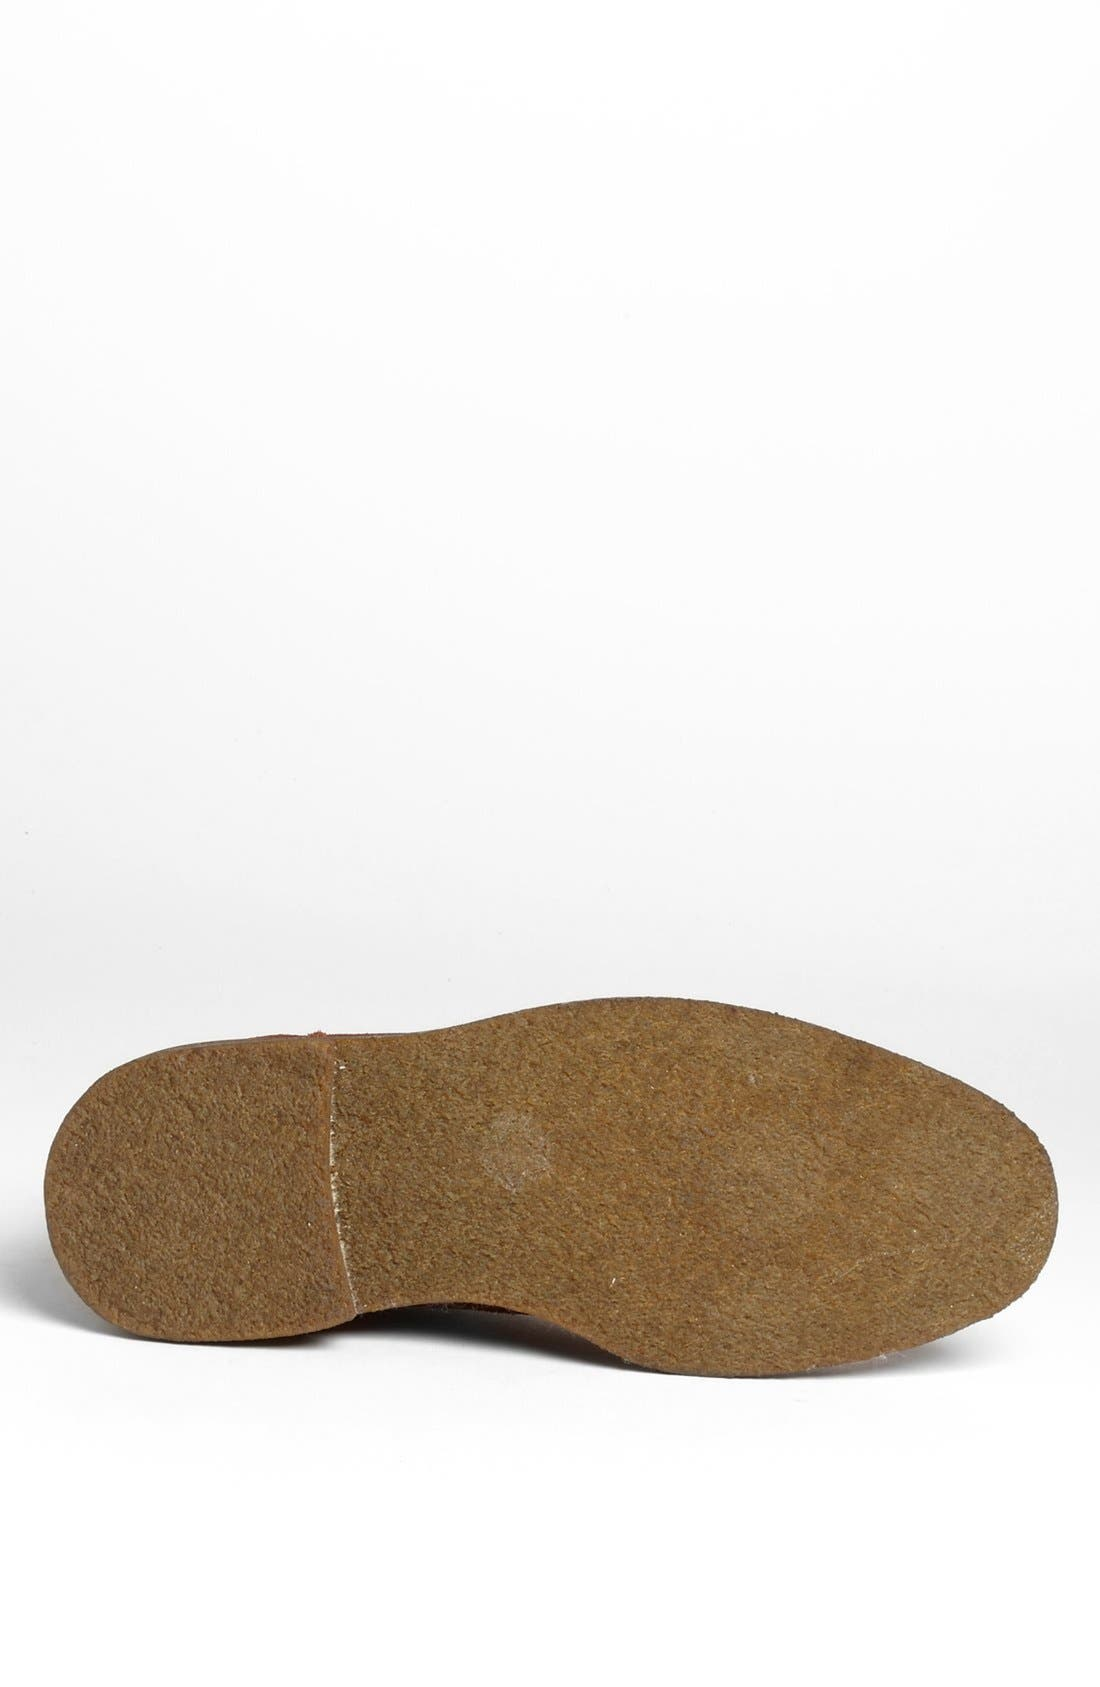 'Copeland' Suede Chukka Boot,                             Alternate thumbnail 18, color,